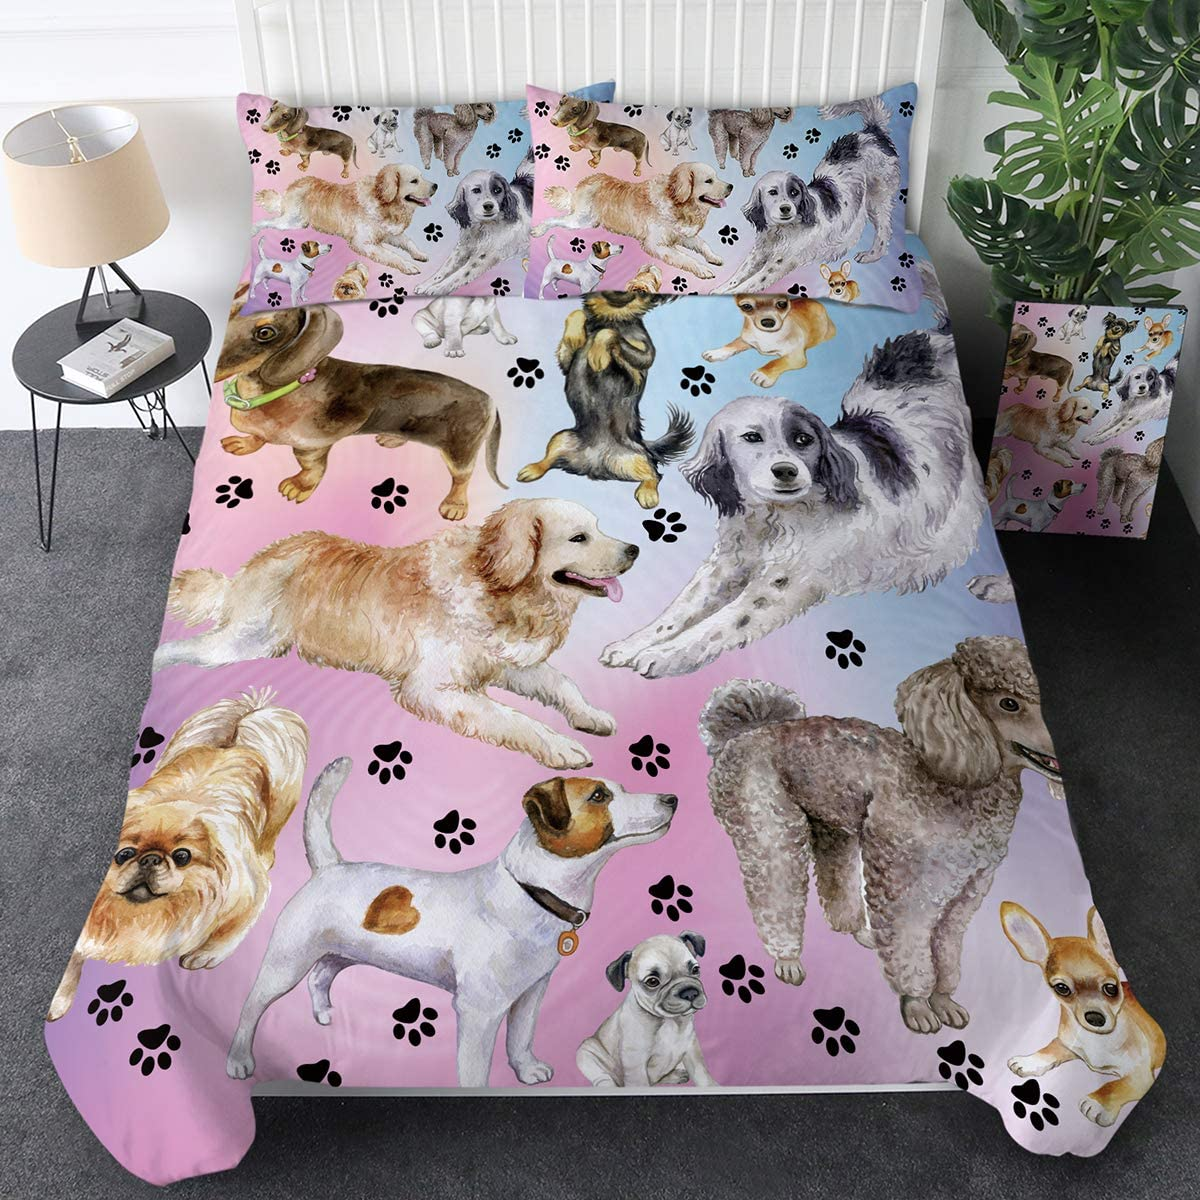 Lovely kindergarten Printing SCM Animal Zoo Printed Duvet Cover Set Cot Size 2 Pcs Ultra Soft Hypoallergenic Fabric Childrens Bedding